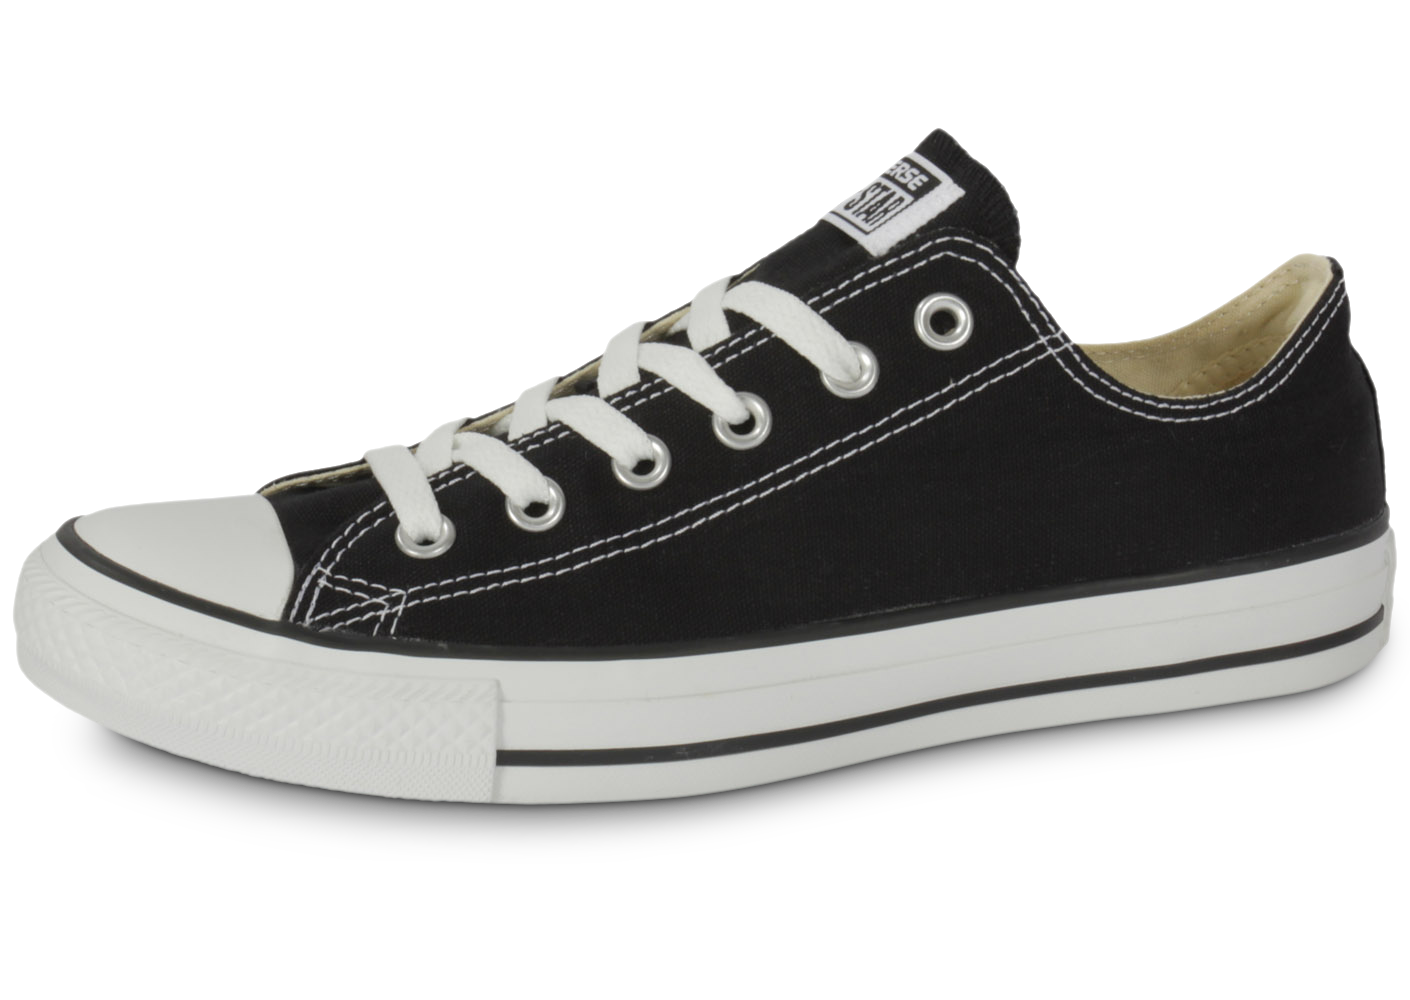 Converse chuck taylor all star low noire